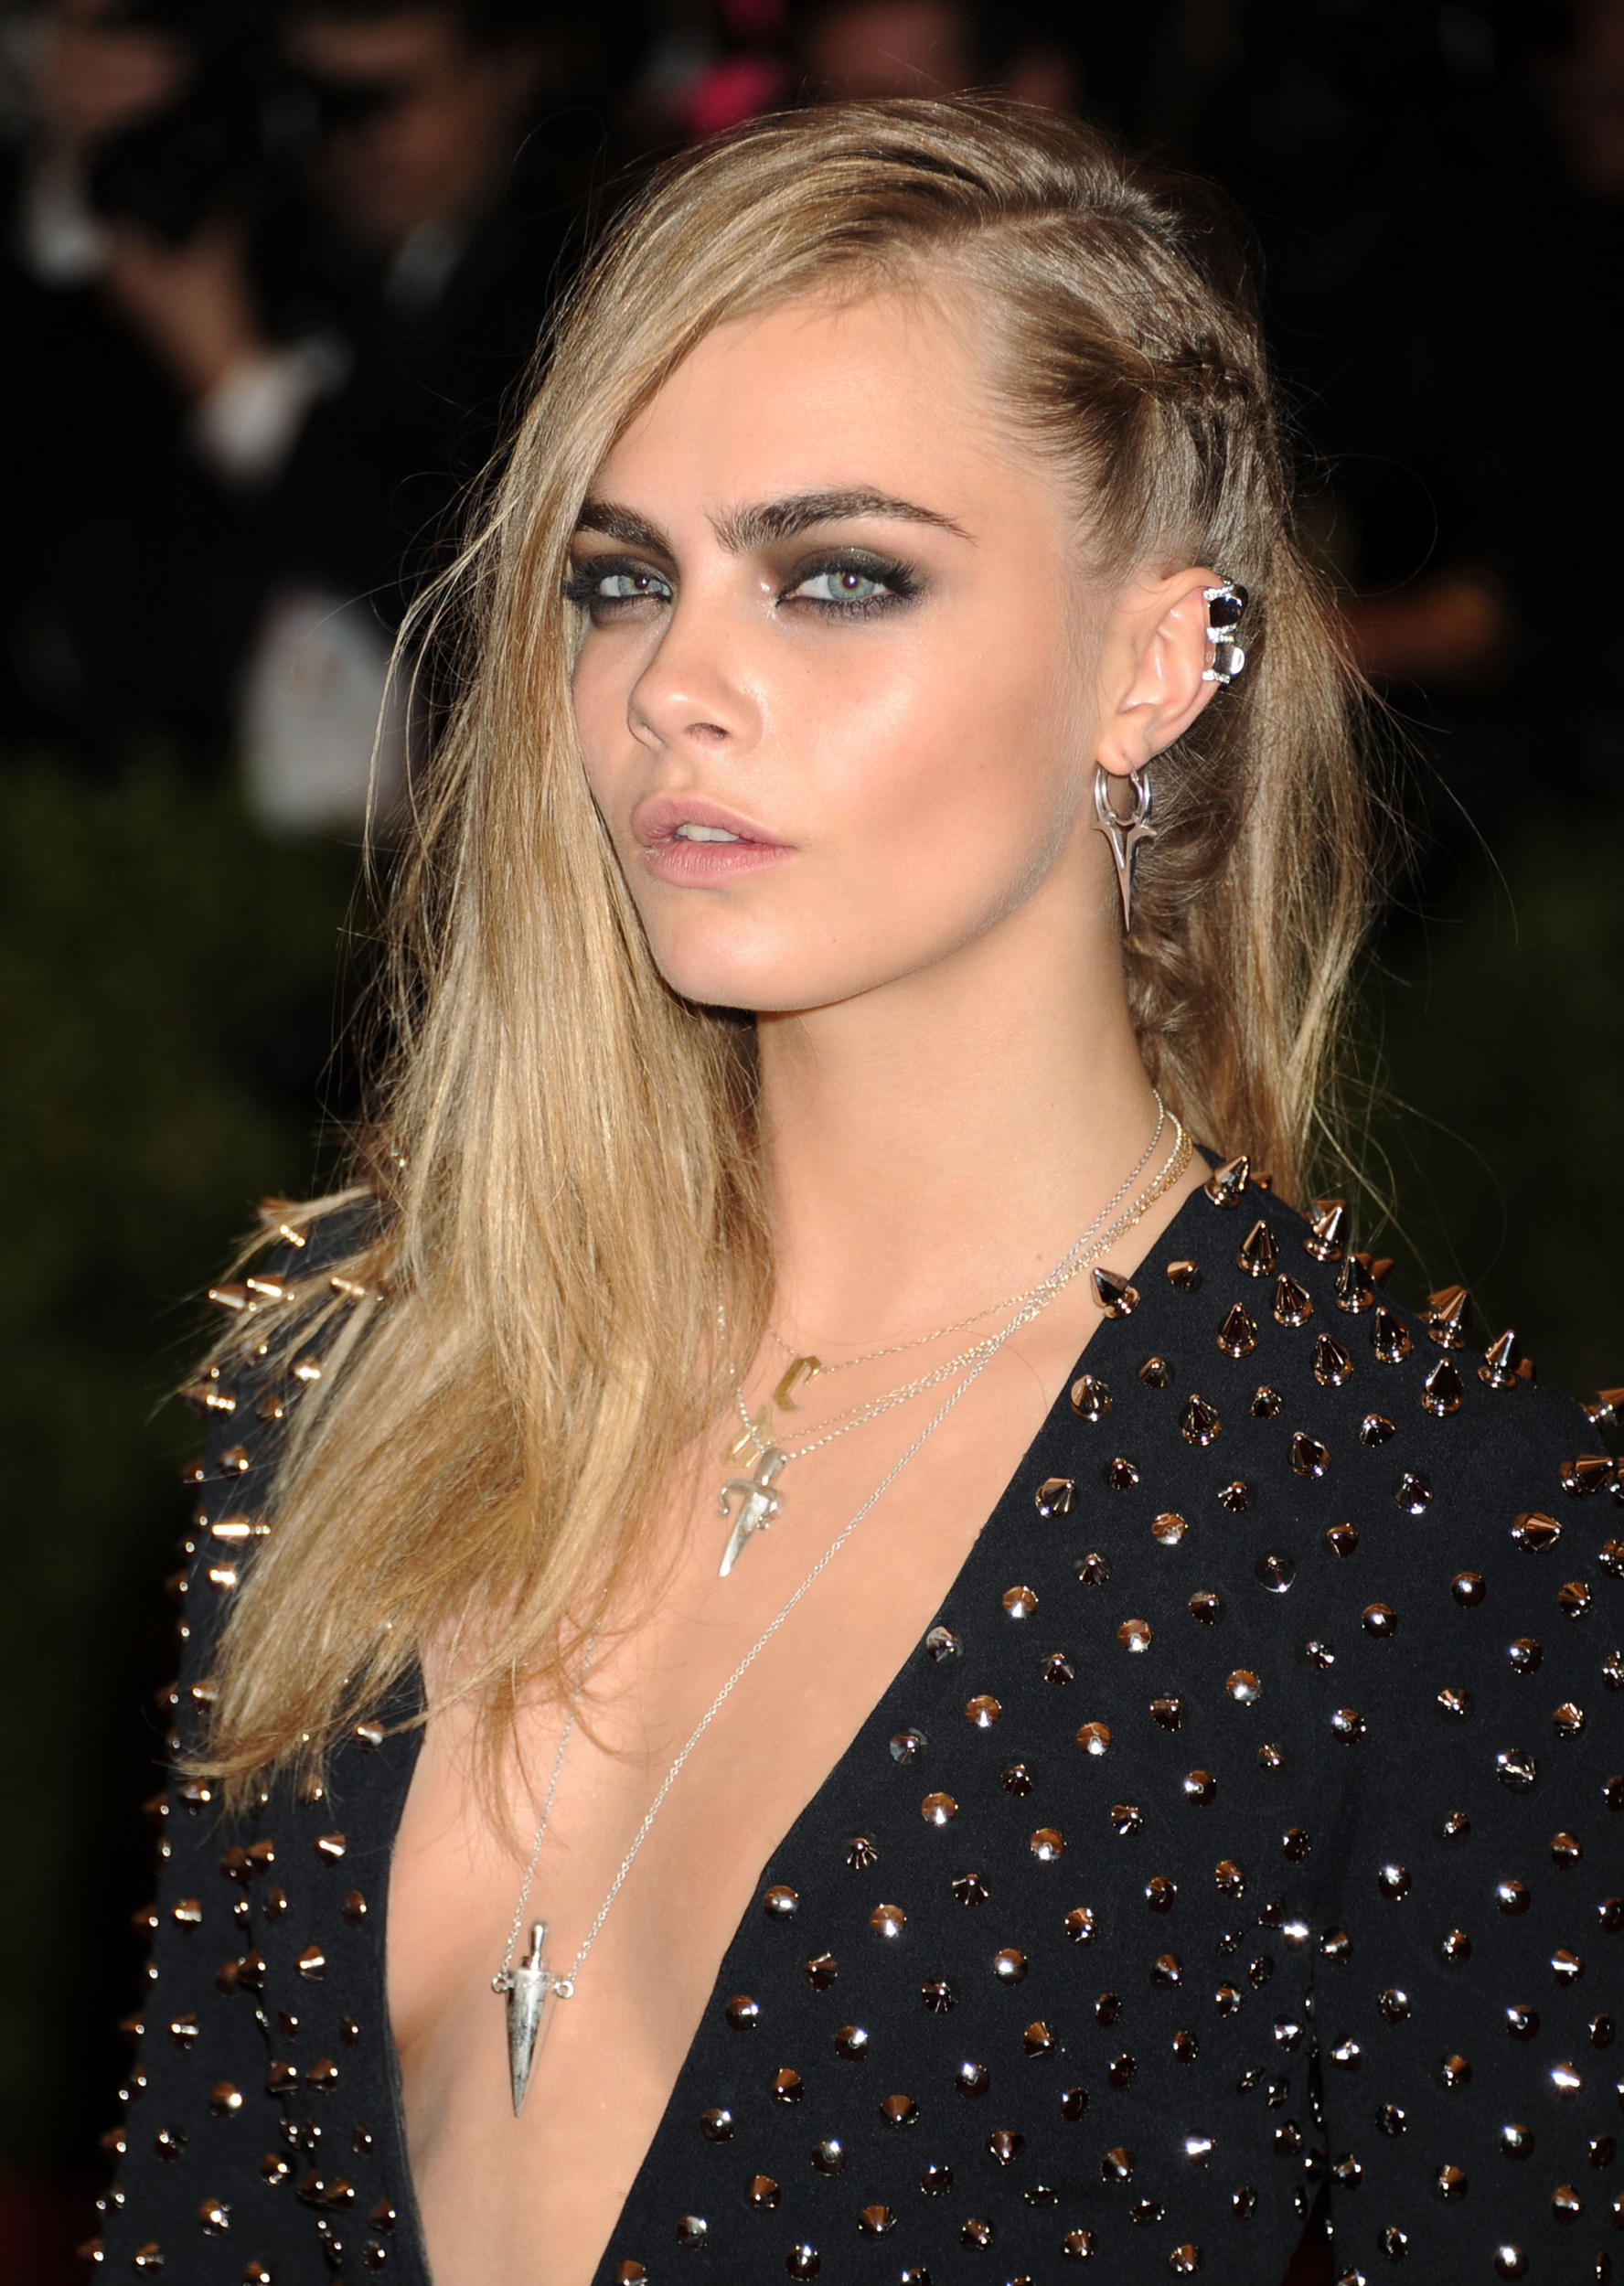 Short Punk Rock Hairstyles Short Hairstyles For Women And Man